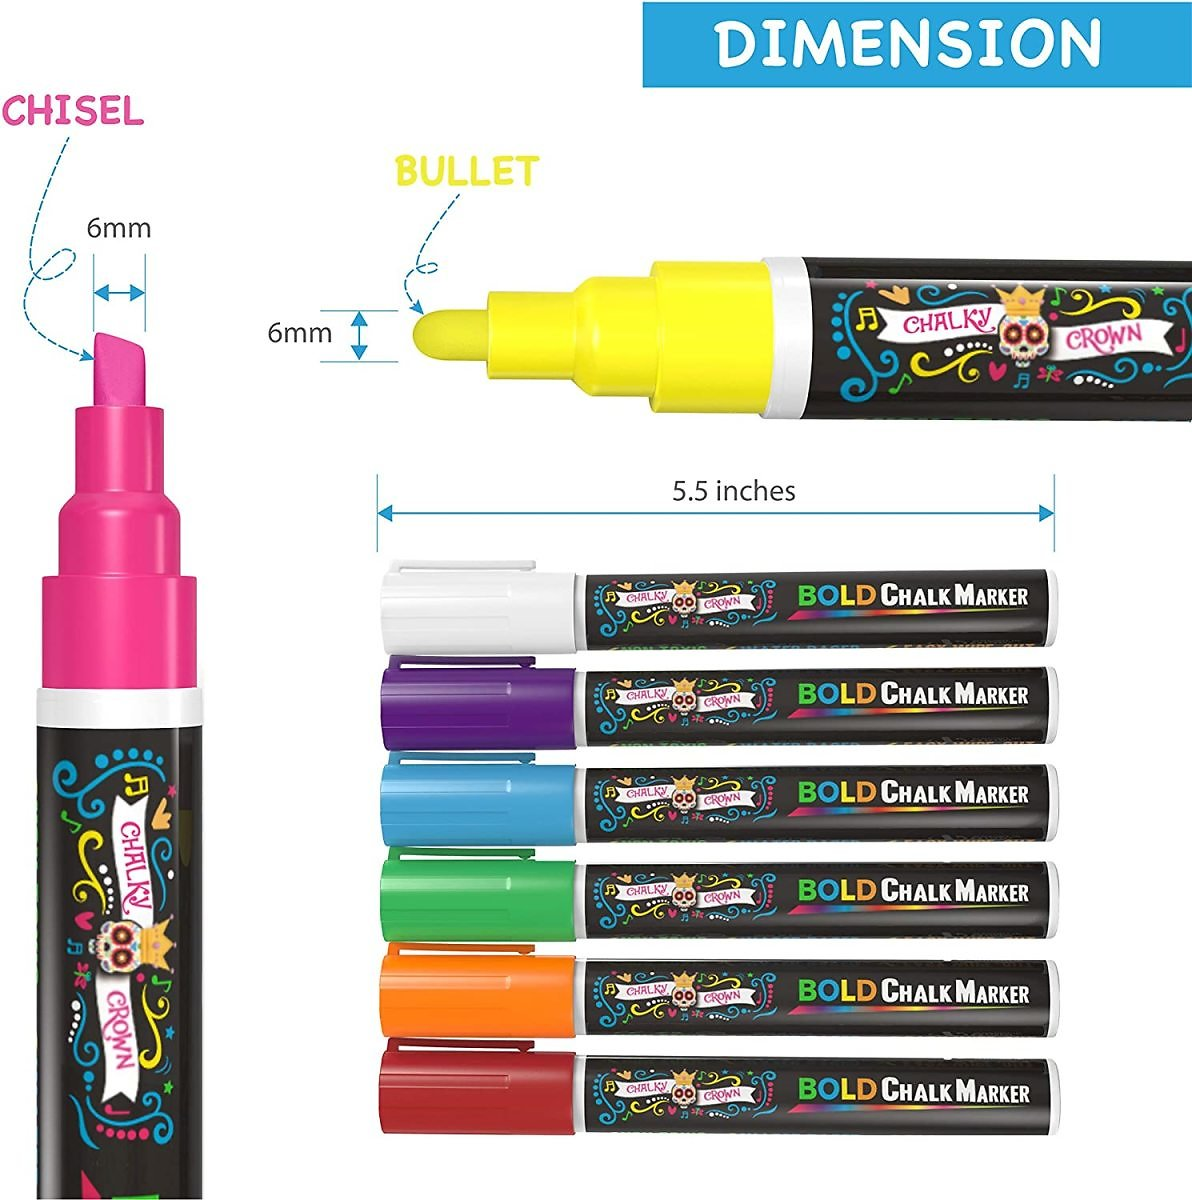 43% Discount - Liquid Chalk Markers for Blackboards, (8 Pack) - 24 Chalkboard Labels Included